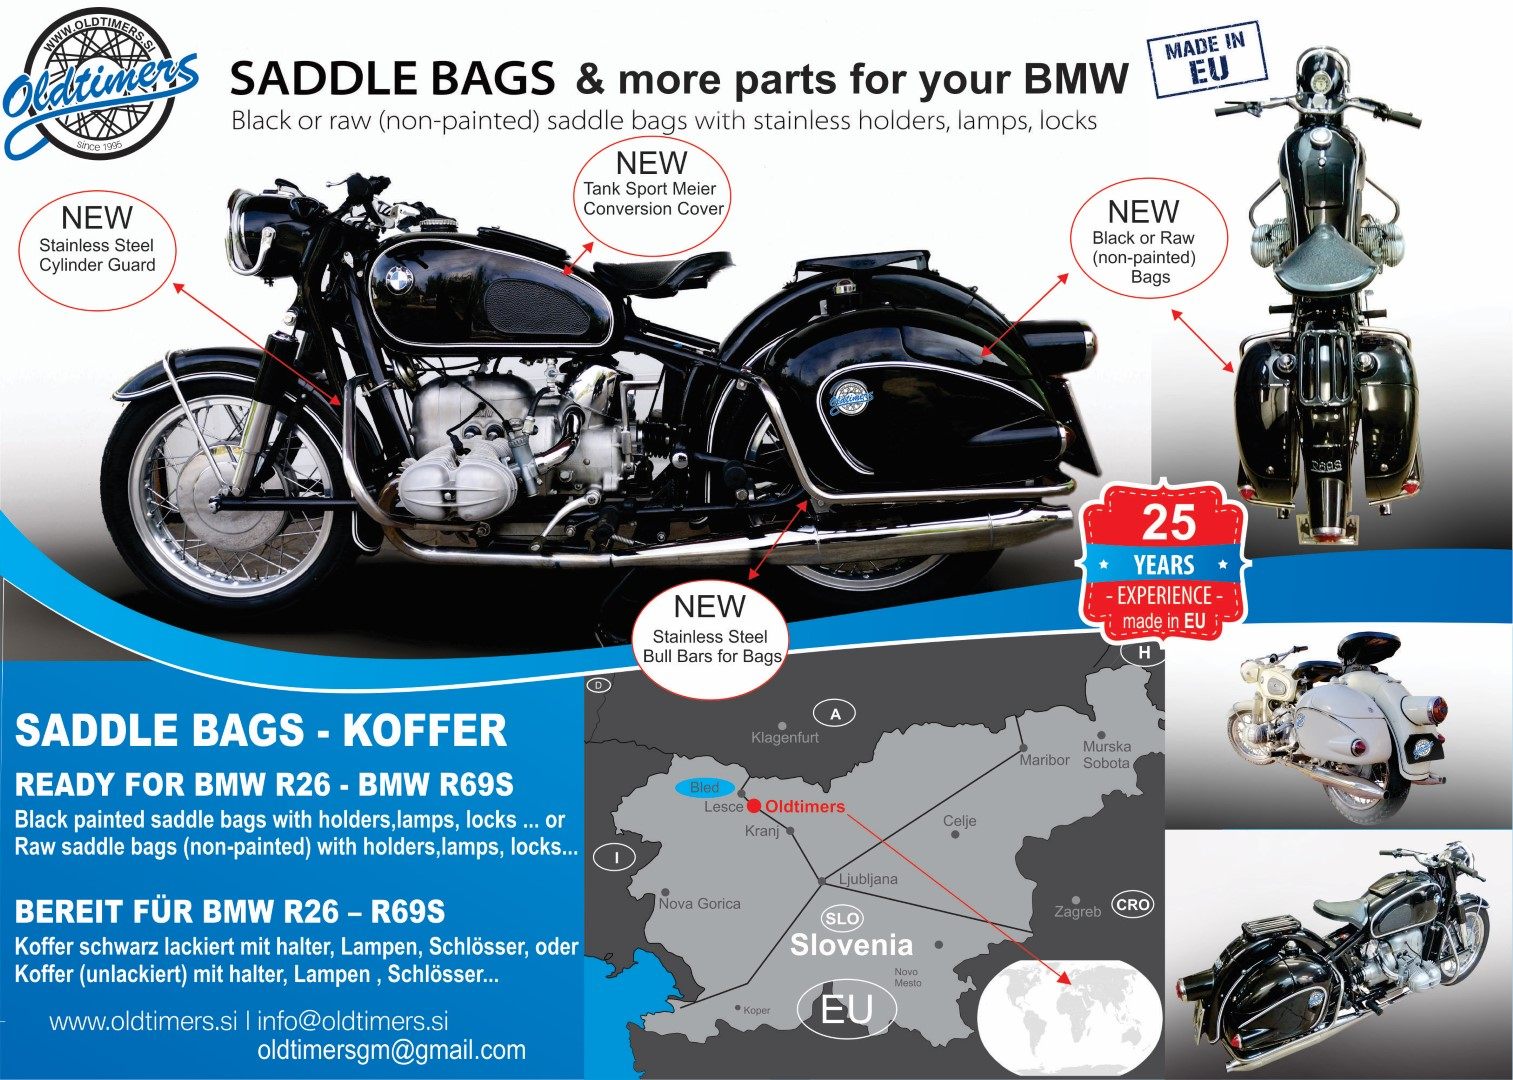 Bags Flyer 12 2019 Large